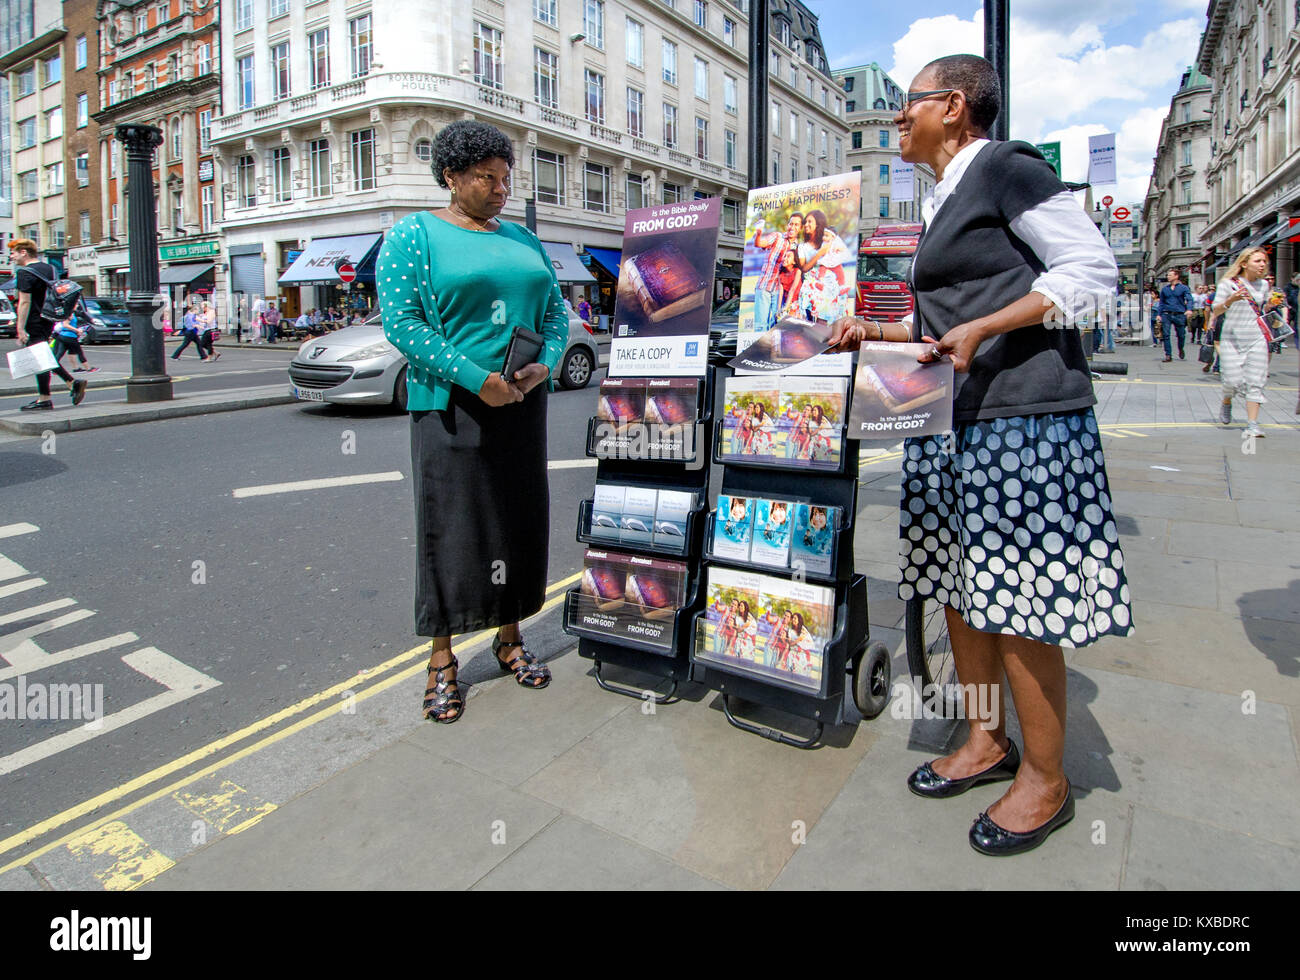 London, England, UK. Jehovah's Witnesses in Regent Street with copies of 'Awake!' - Stock Image